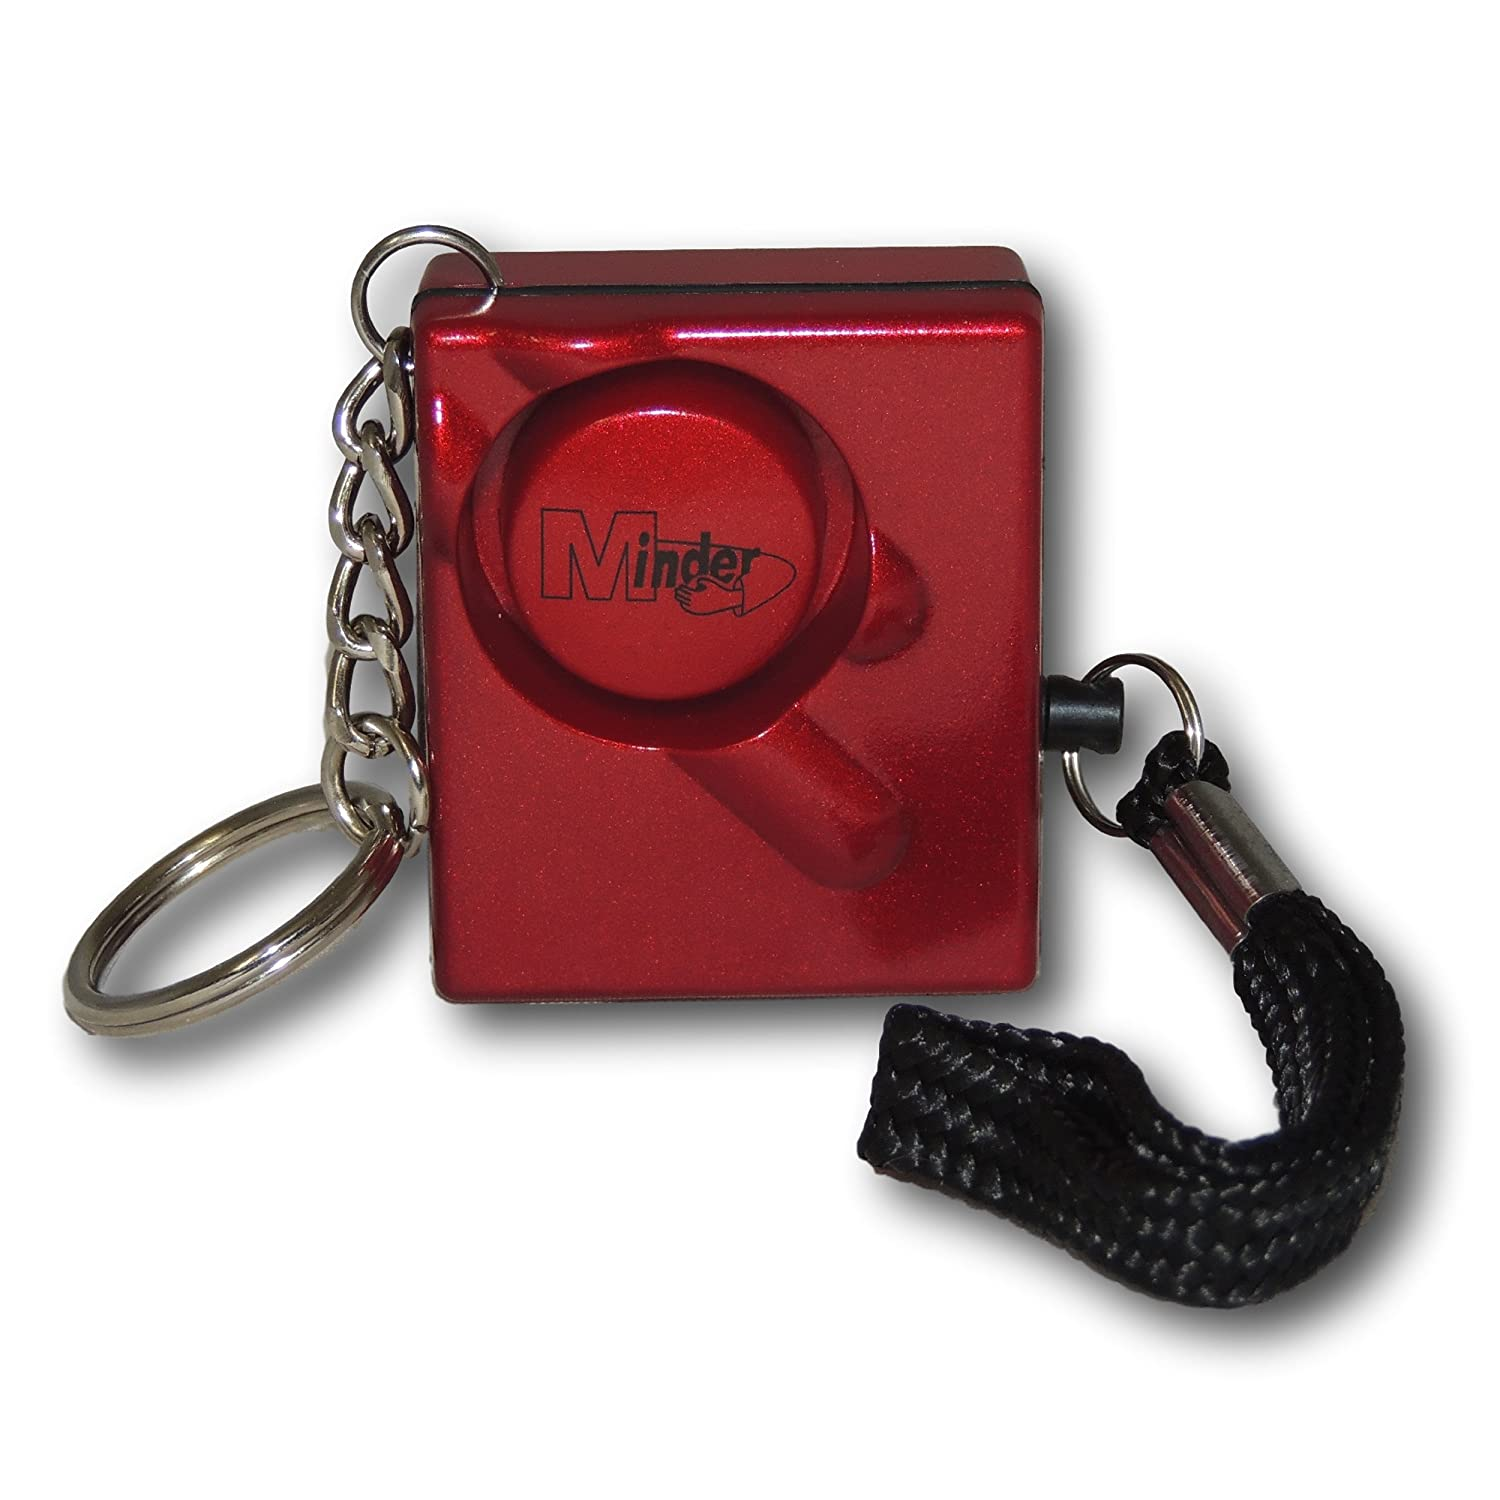 EPOSGEAR Metallic Red Mini Minder Loud Personal Staff Panic Rape Attack Safety Security Alarm 140db